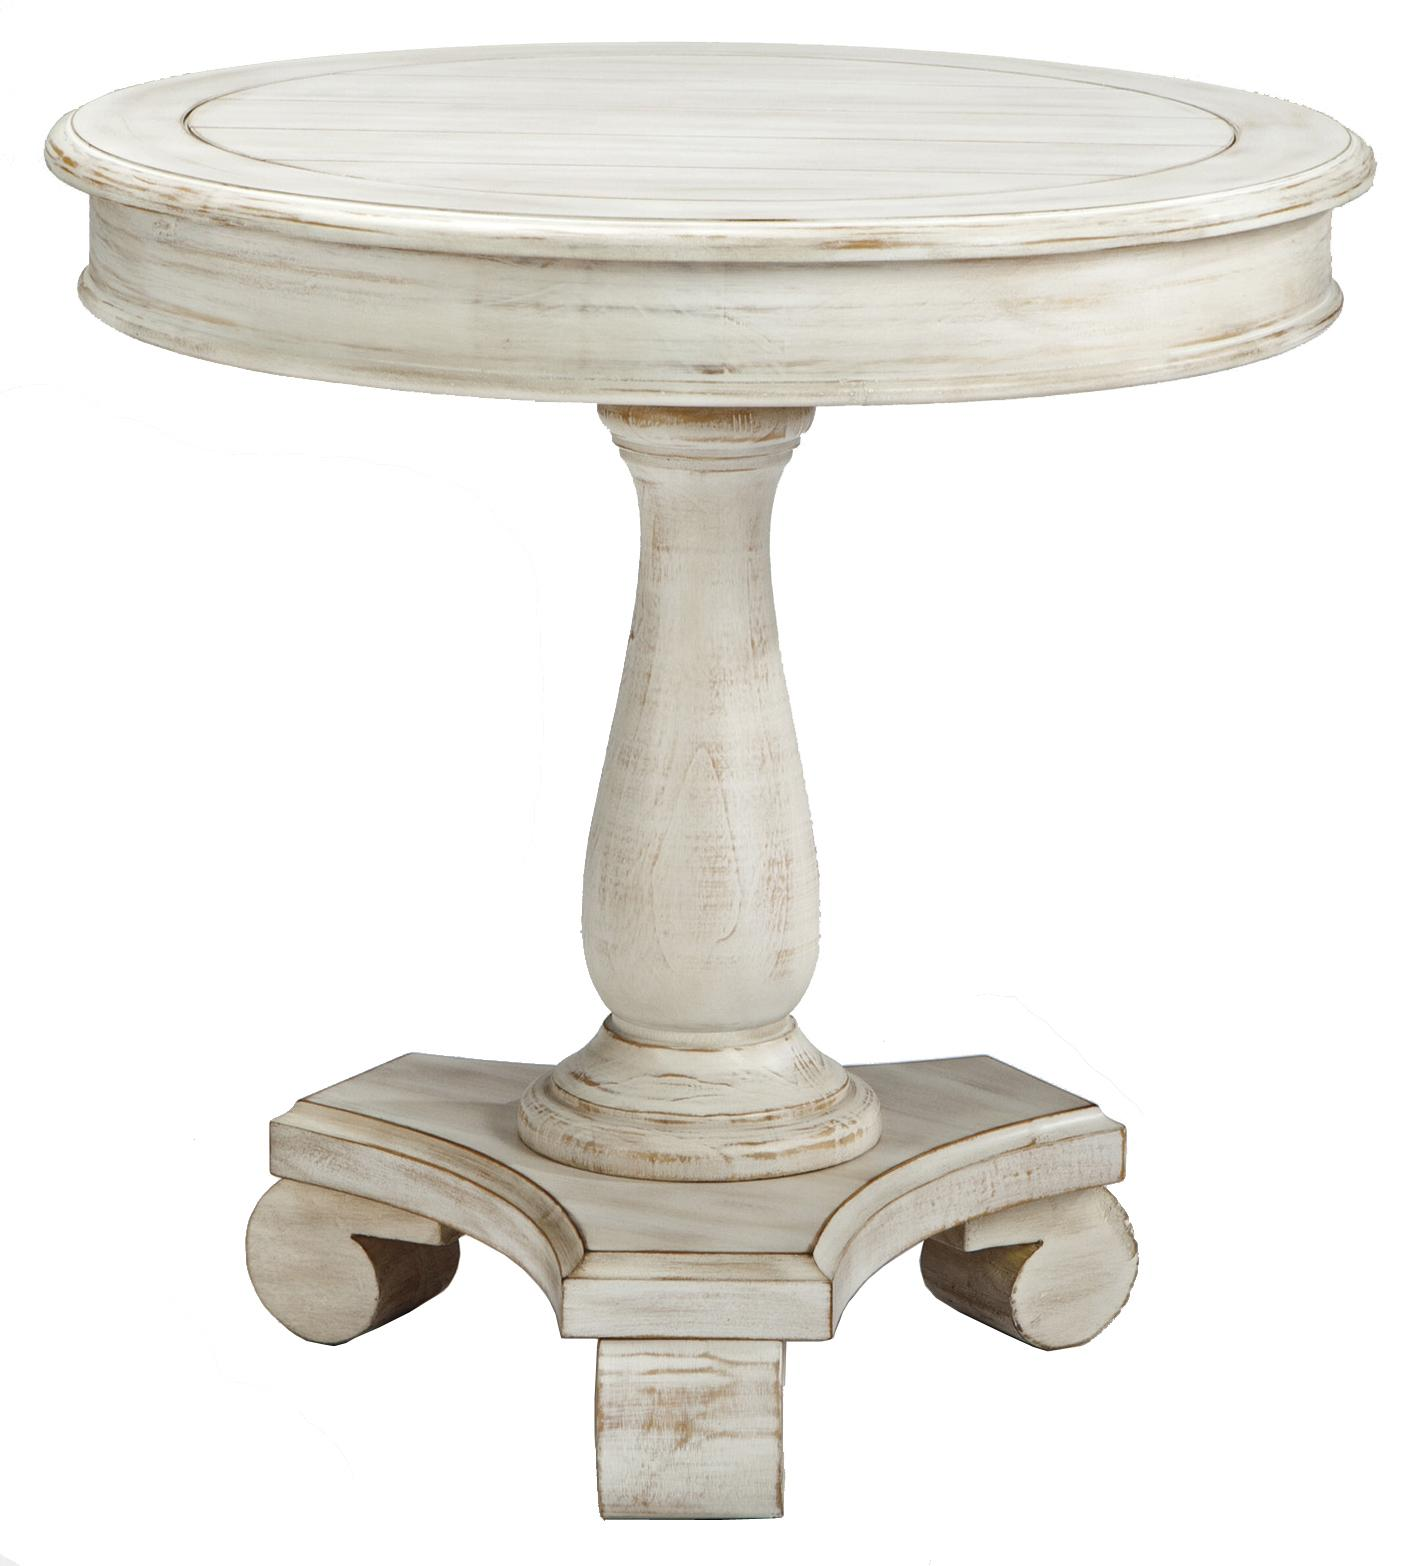 pedestal accent table simplify round with turned base signature pottery barn rustic console furniture ashley set mosaic bistro antique dining room half moon simple white desk day